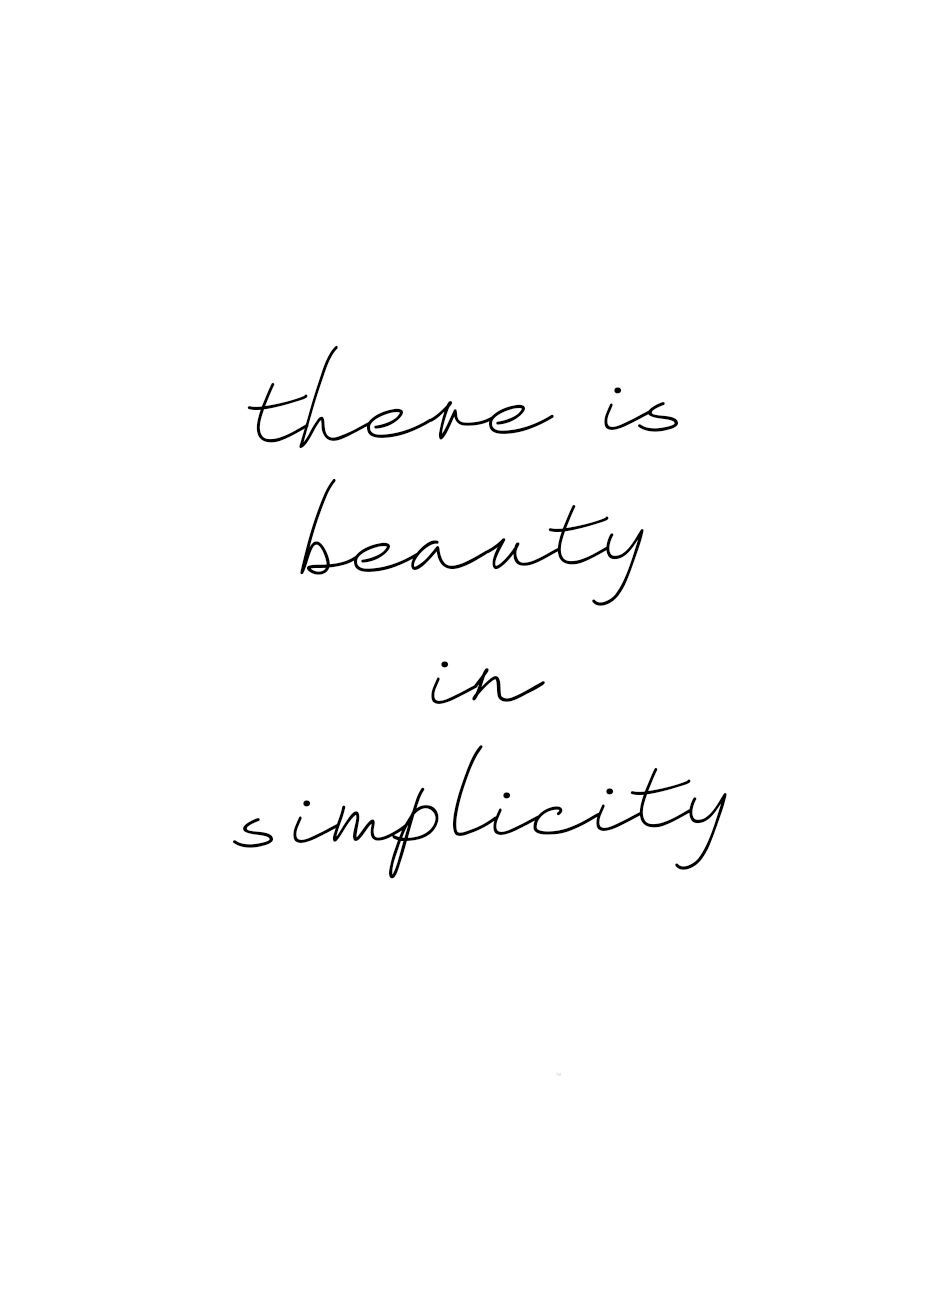 Beautiful Quotes Pretty Quotes Beautiful Woman Quotes Natural Beauty Quotes Beautiful Sayings Beautiful Captions Q Words Quotes Life Quotes Beauty Quotes